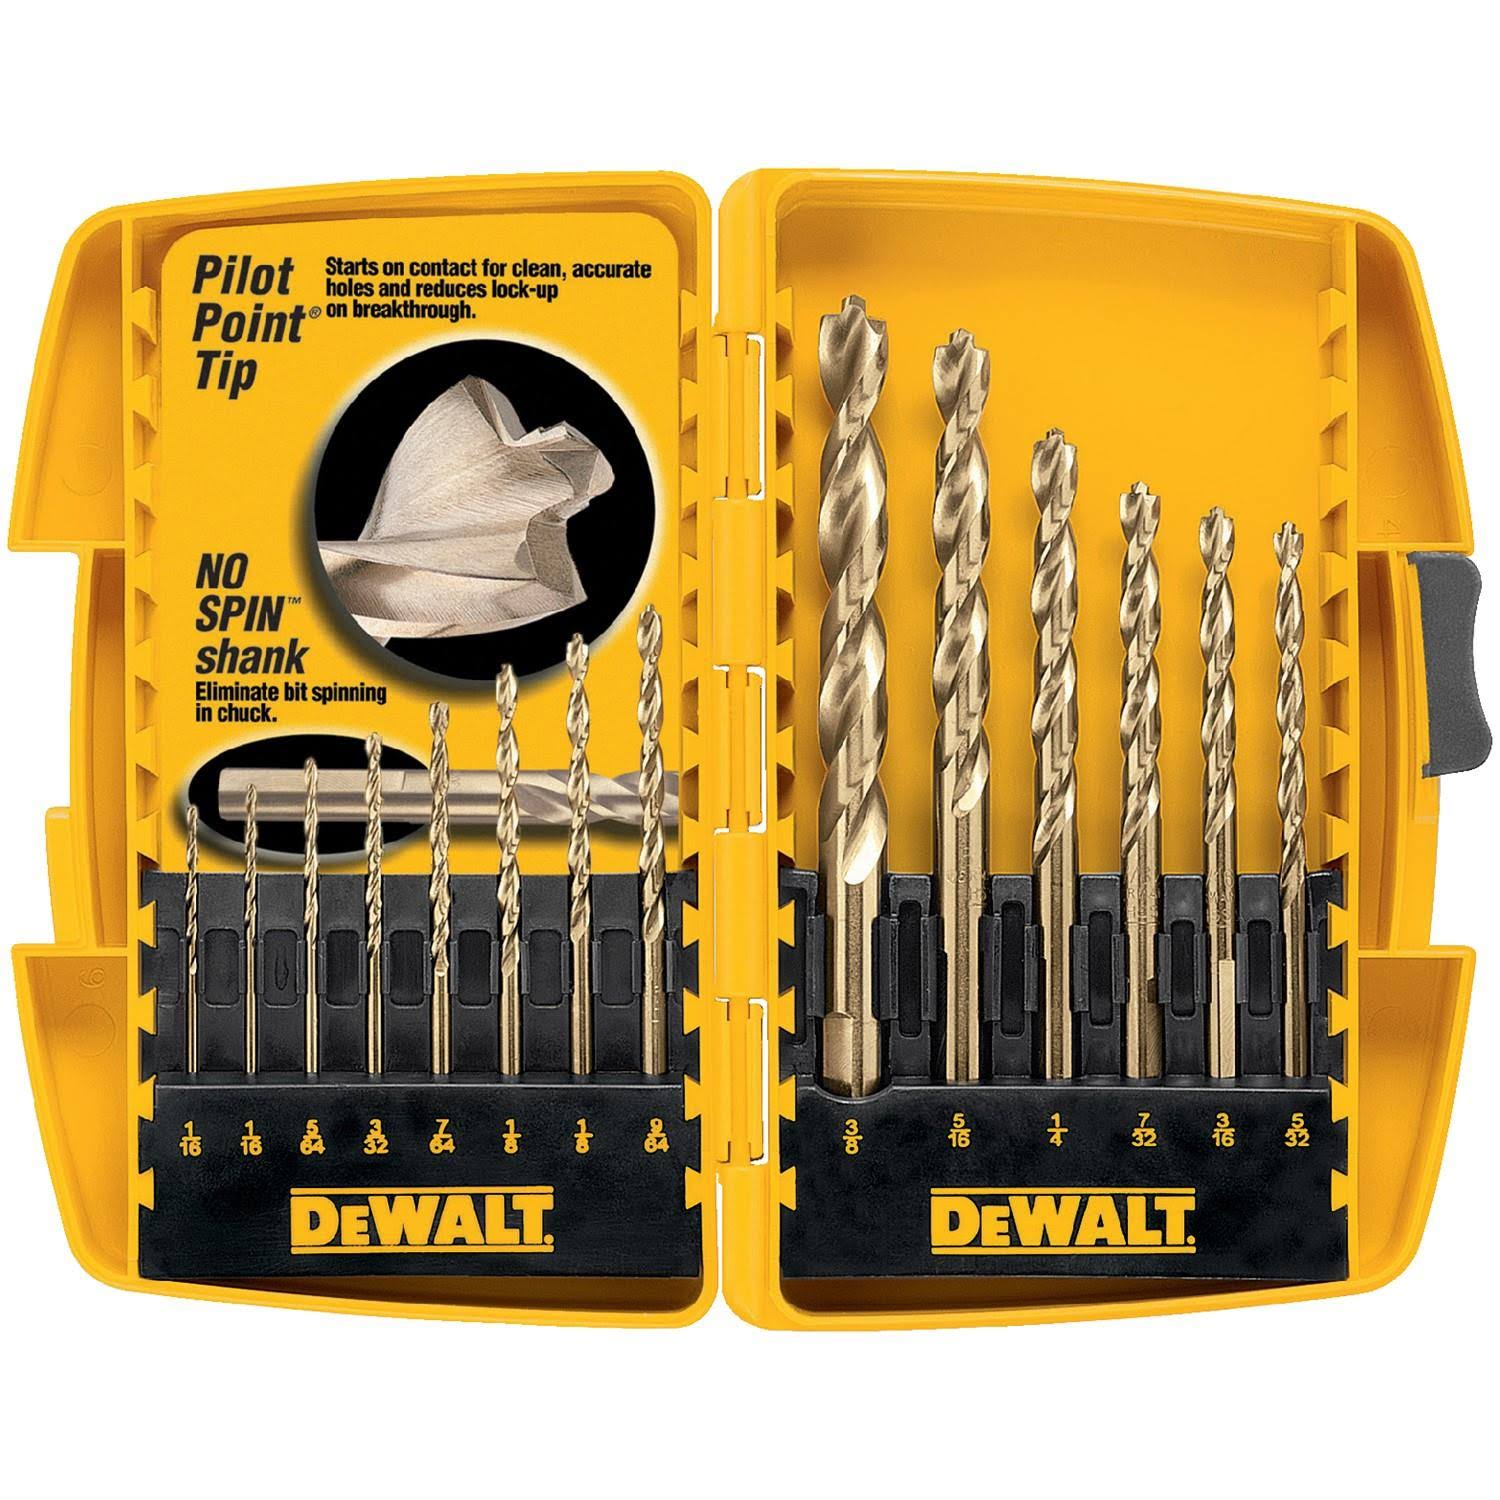 Dewalt Twist Drill Bit - 14 Pieces, Pilot-Point